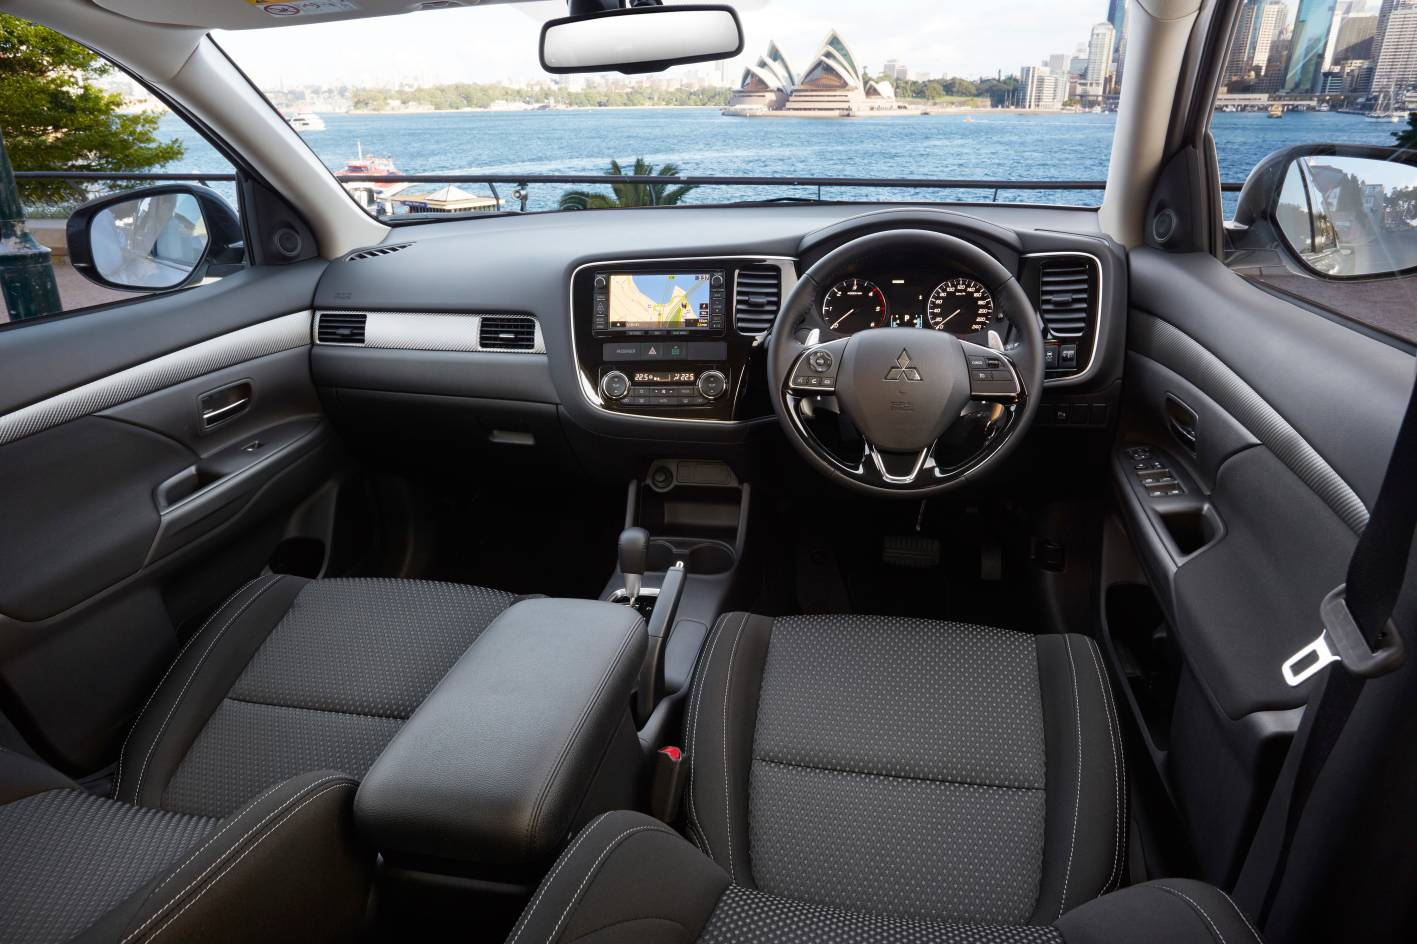 Mitsubishi Cars News 2016 Outlander On Sale Now From 27 740